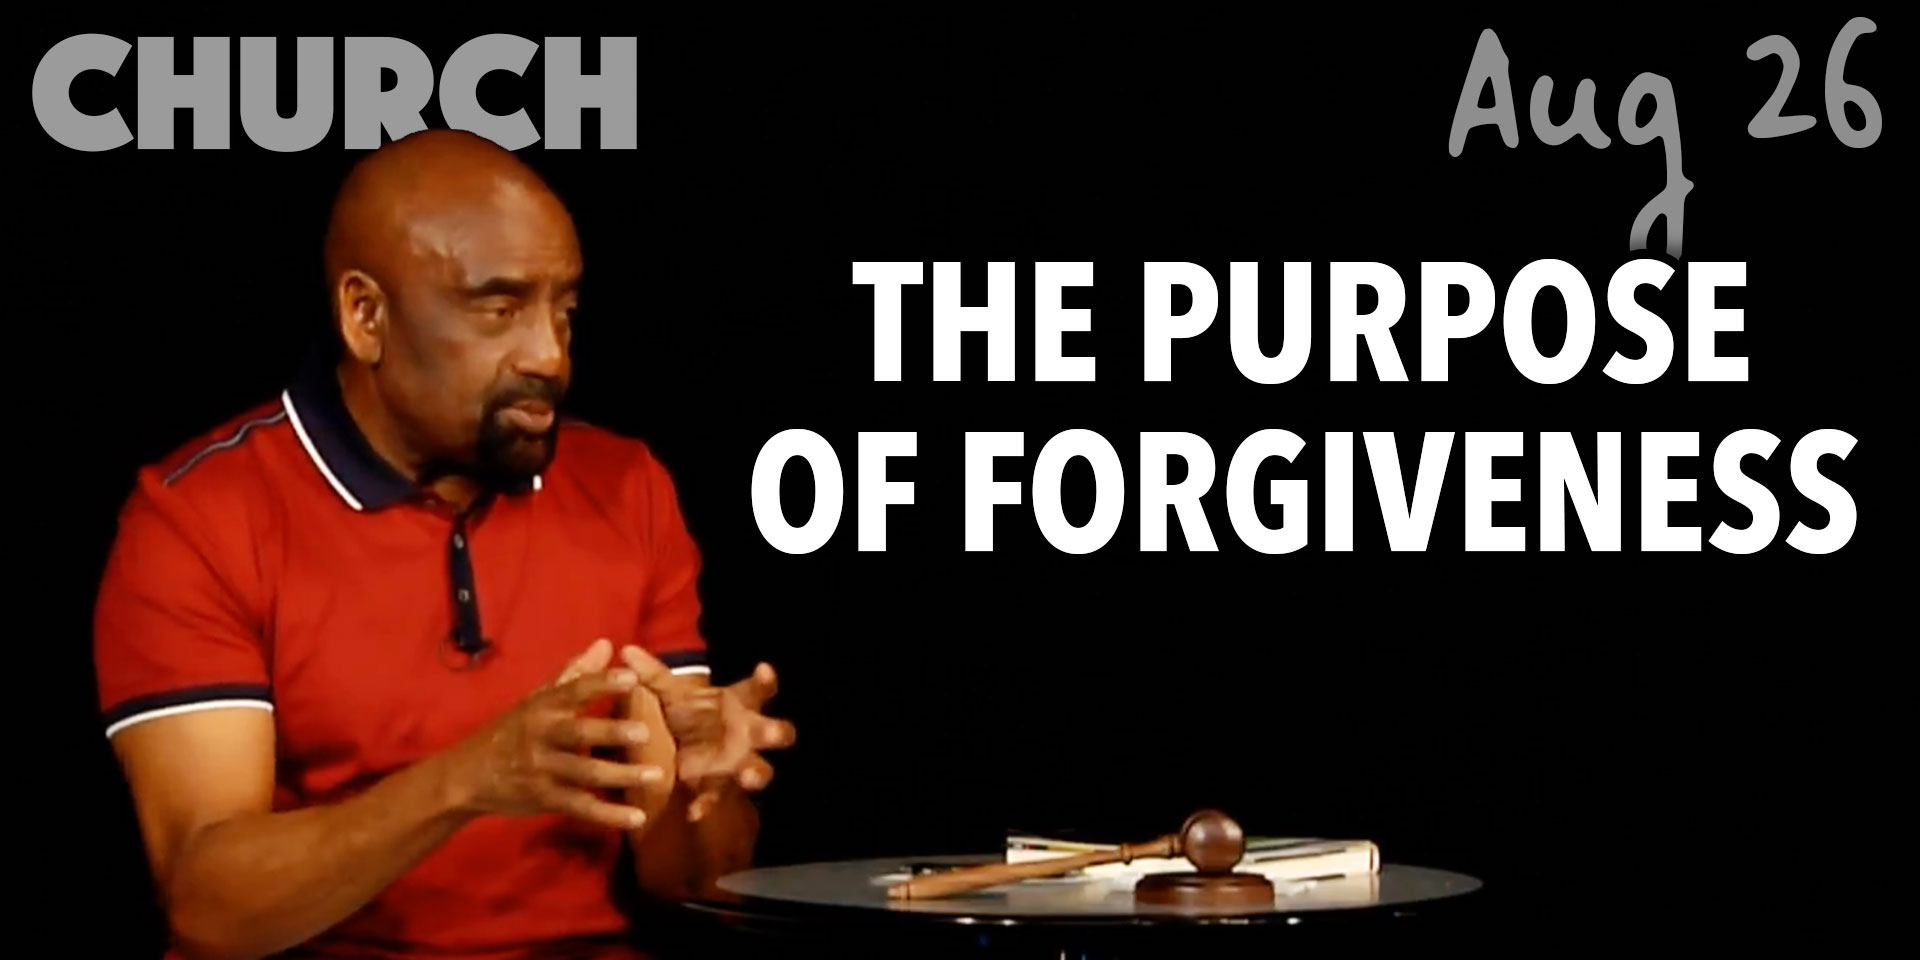 The Purpose of Forgiveness (Church, Aug 26)